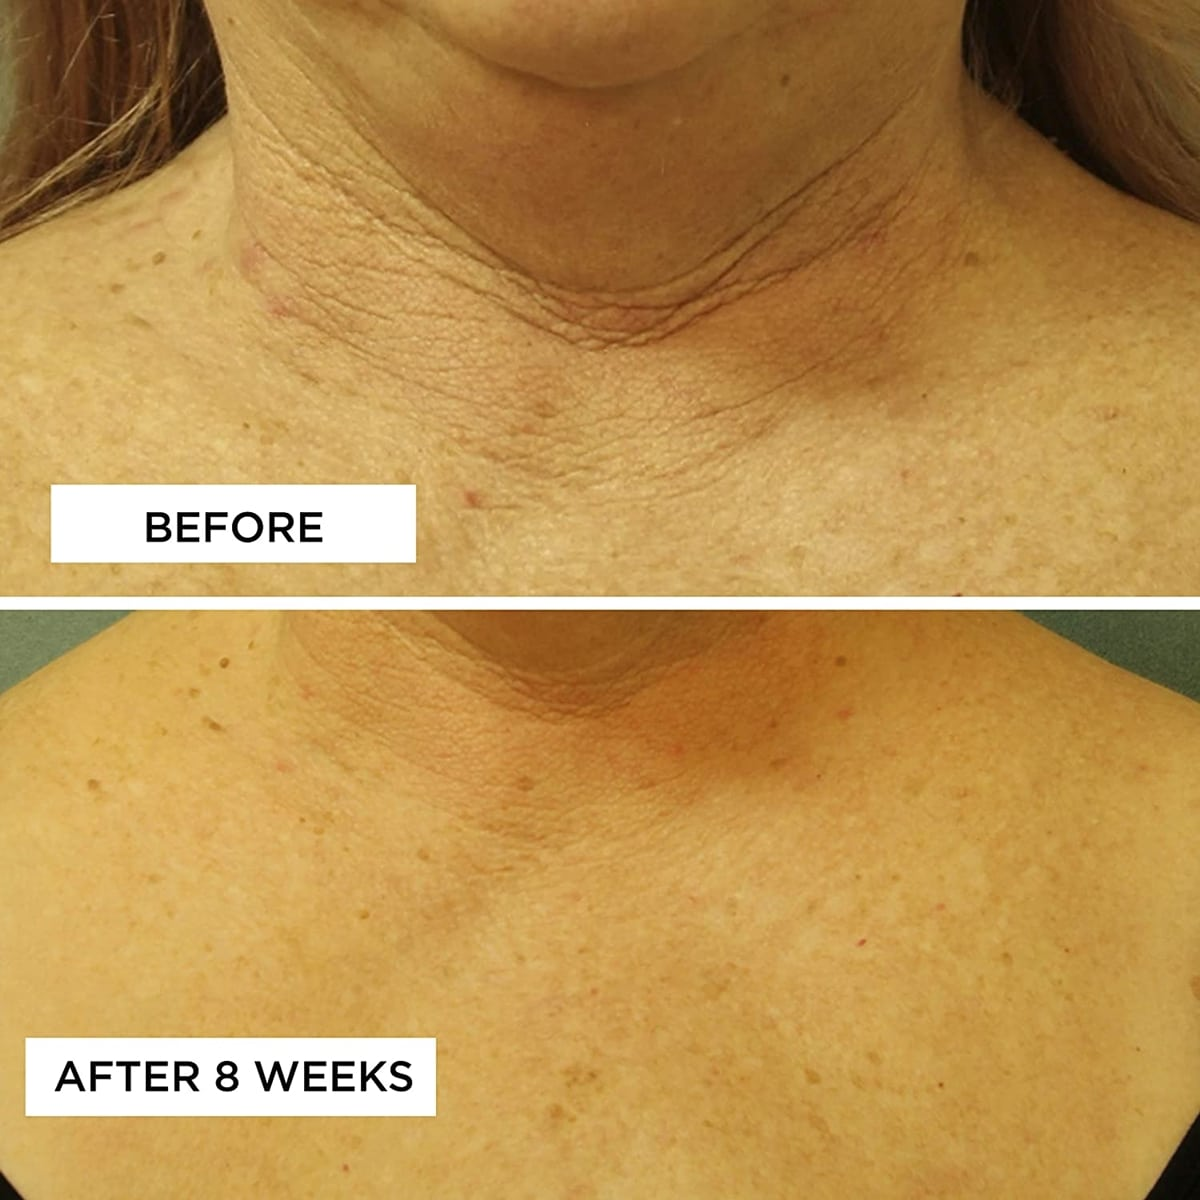 that visibly smooths, firms and evens the appearance of damaged skin along the neck and chest